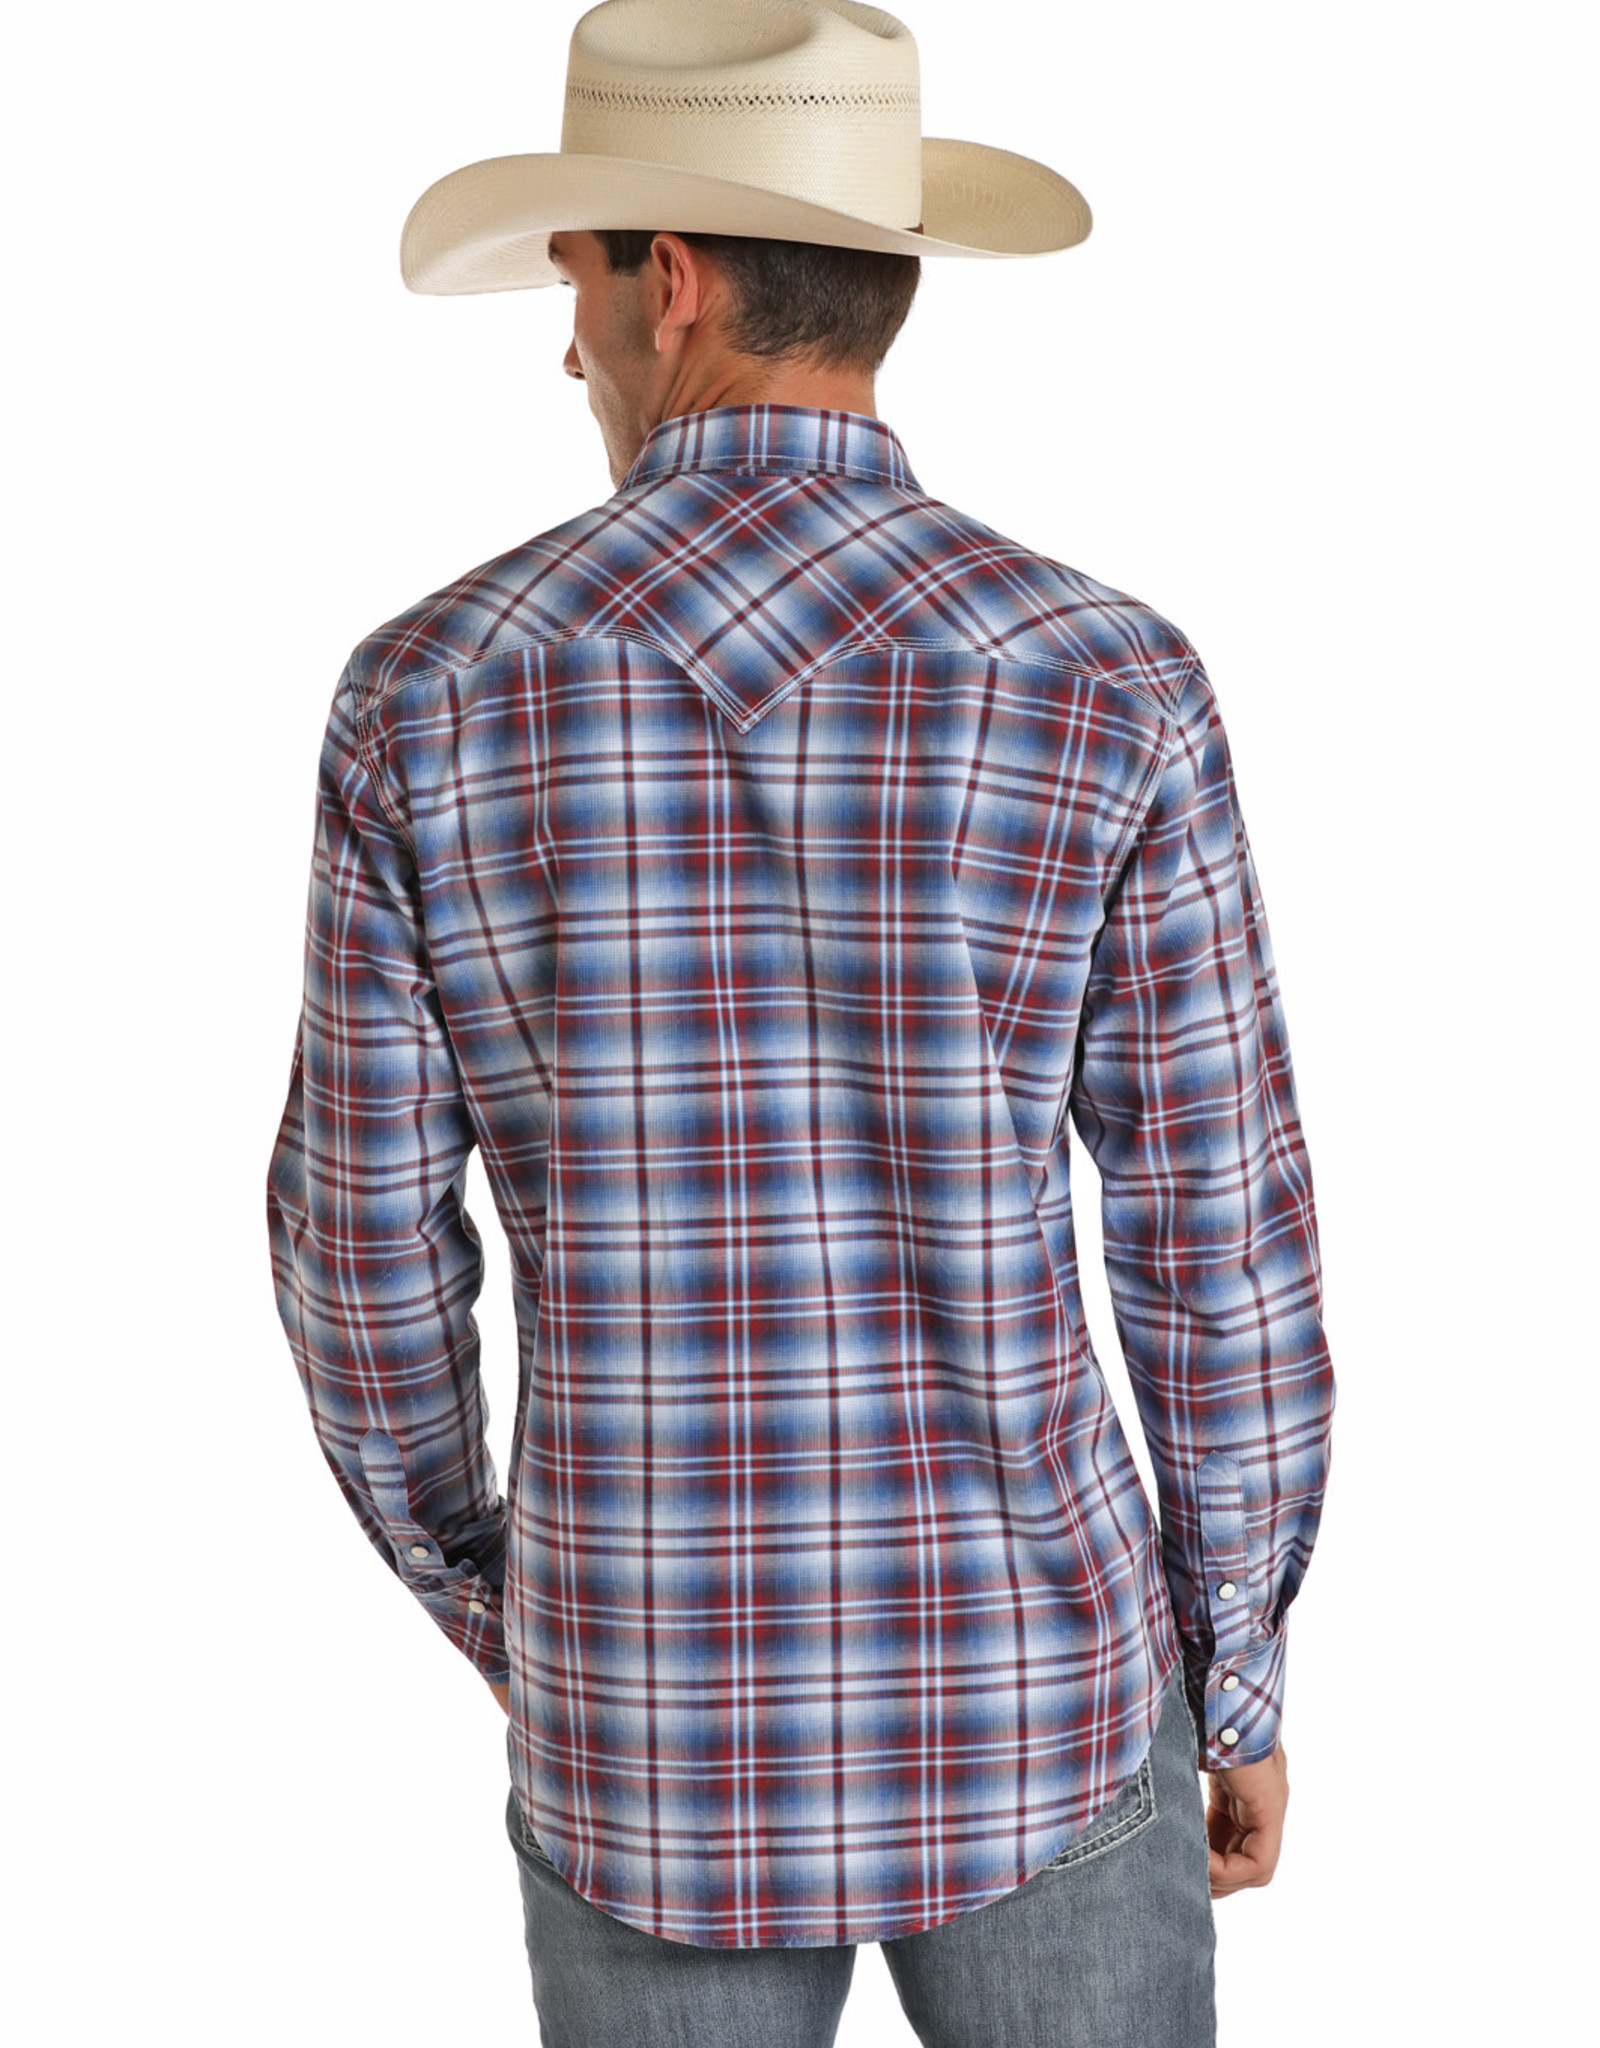 Mens Rock N Roll Red White Blue Retro Snap Plaid